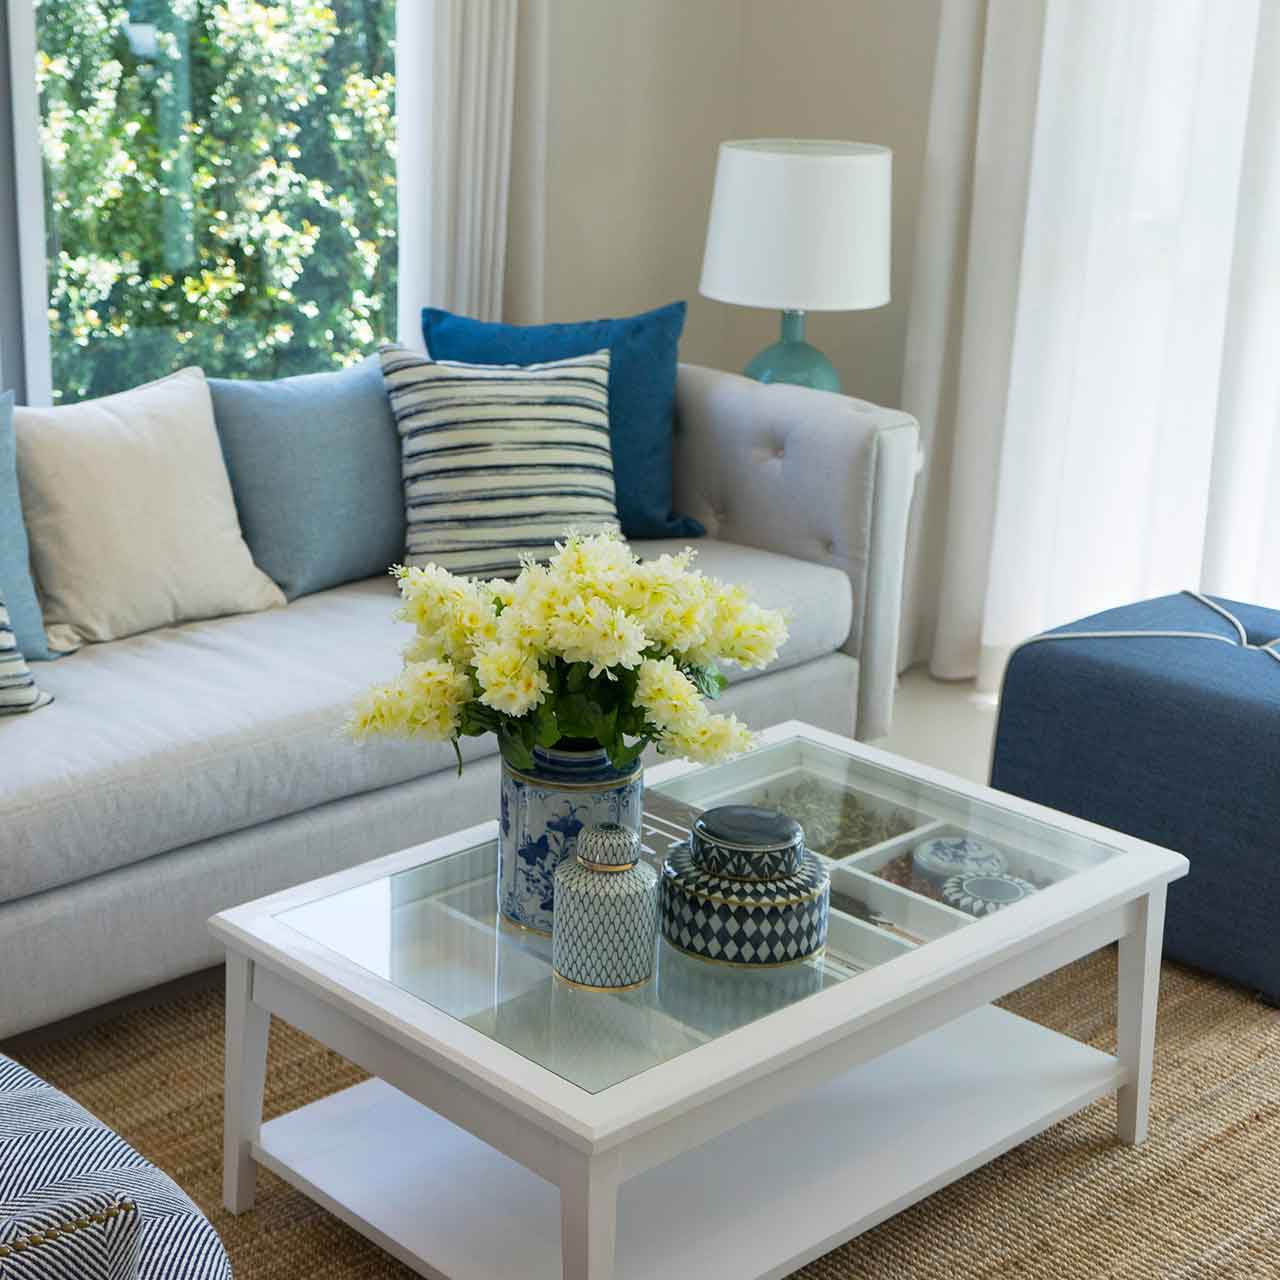 Use sand-coloured fabrics and driftwood accents to complement the beach style living room interiors